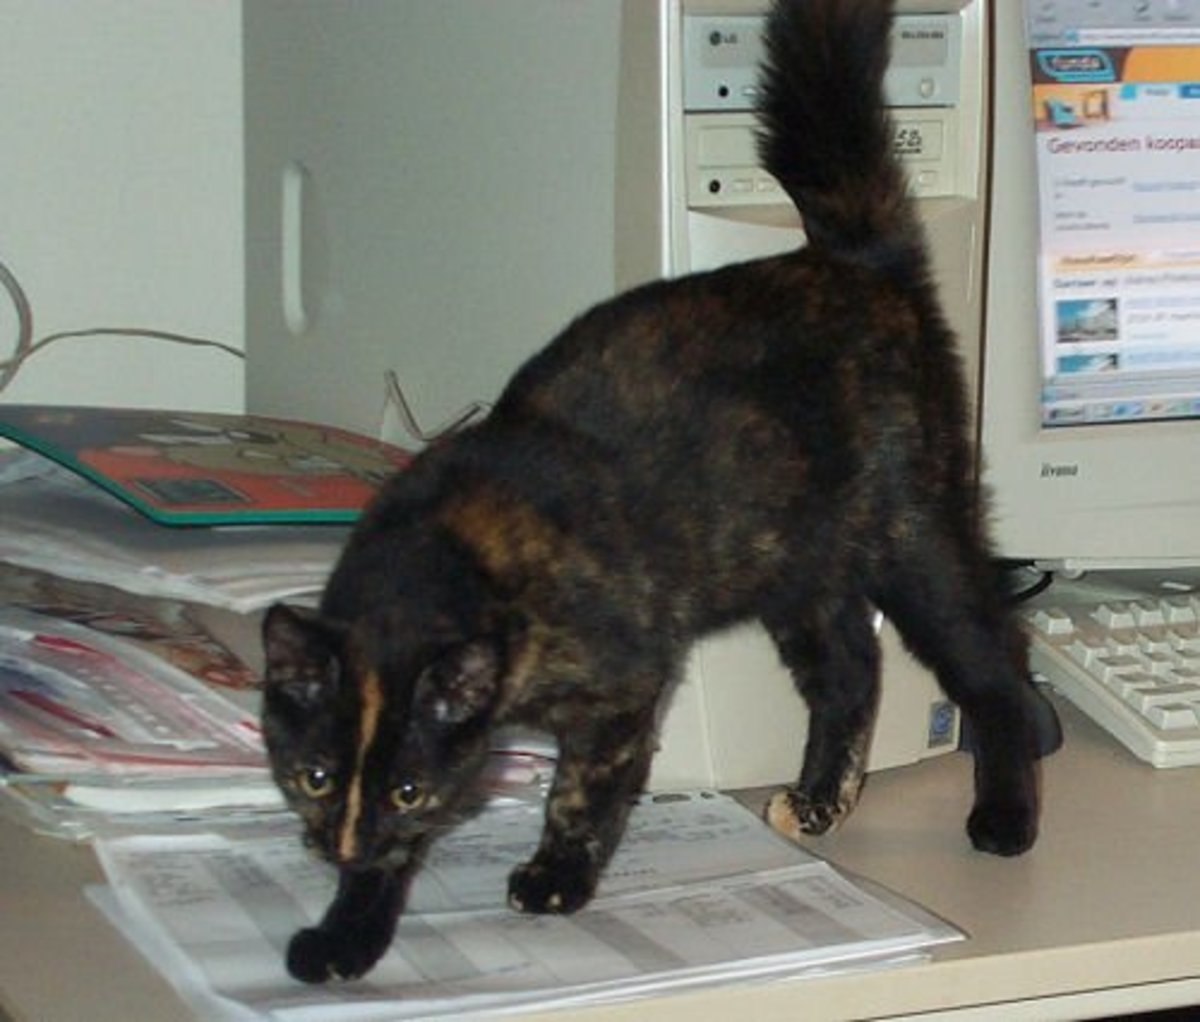 * Differences Between Tortoiseshell and Calico Cats